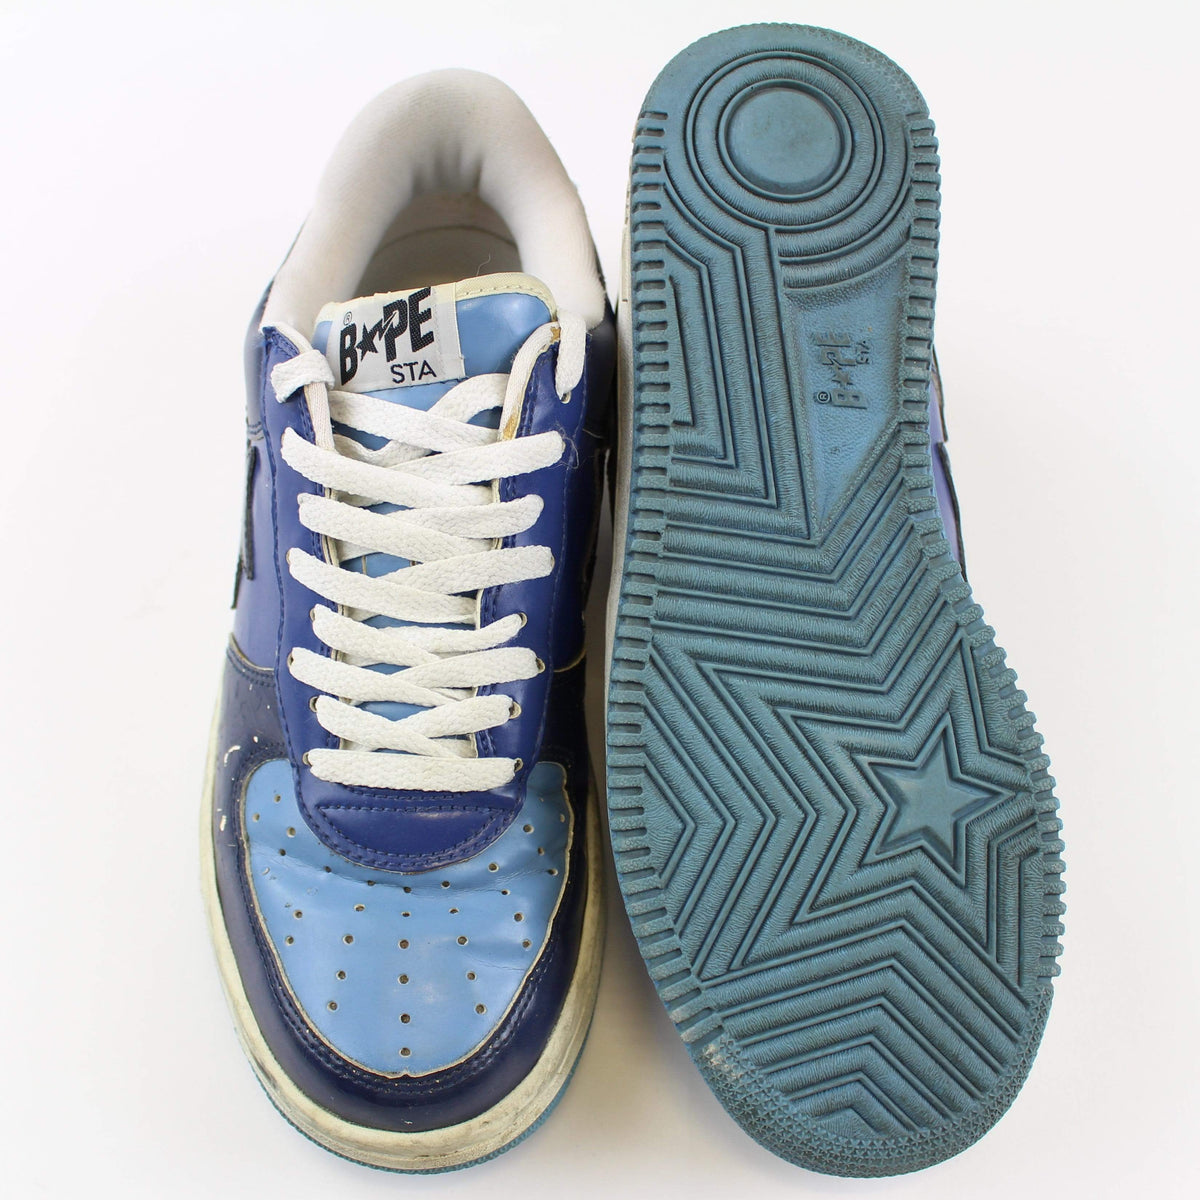 Bapesta Navy & Light Blue - SaruGeneral